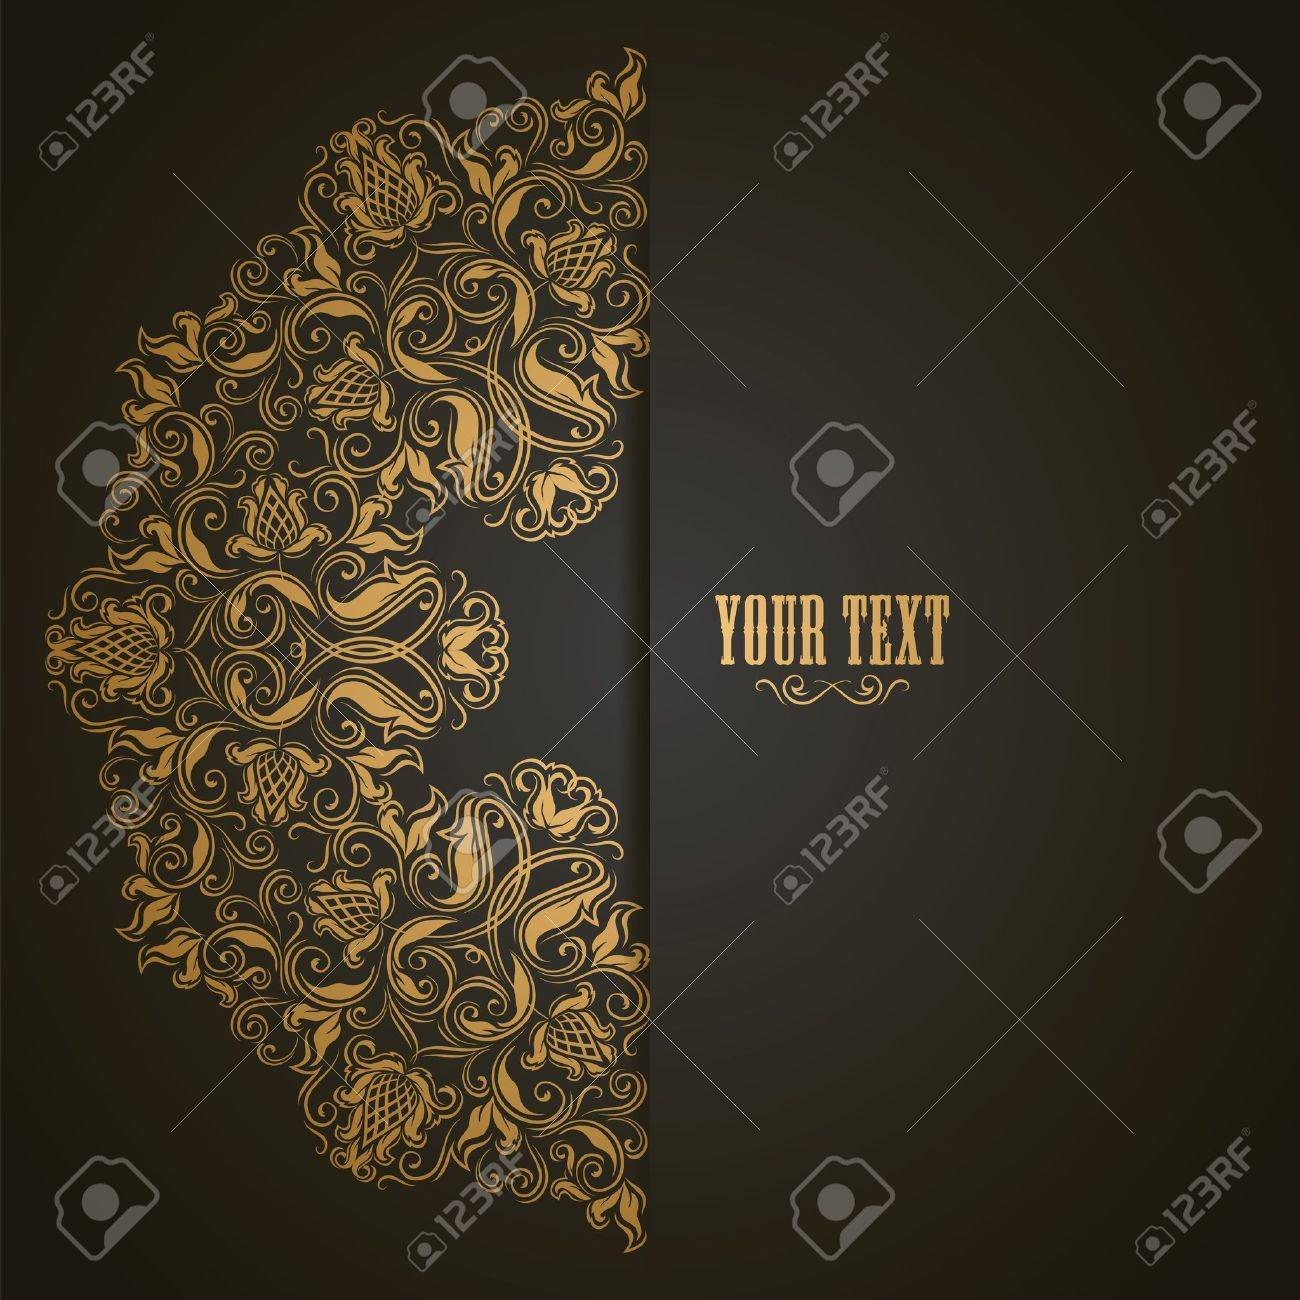 Elegant background with lace ornament and place for text. Floral elements, ornate background. Stock Vector - 17623674